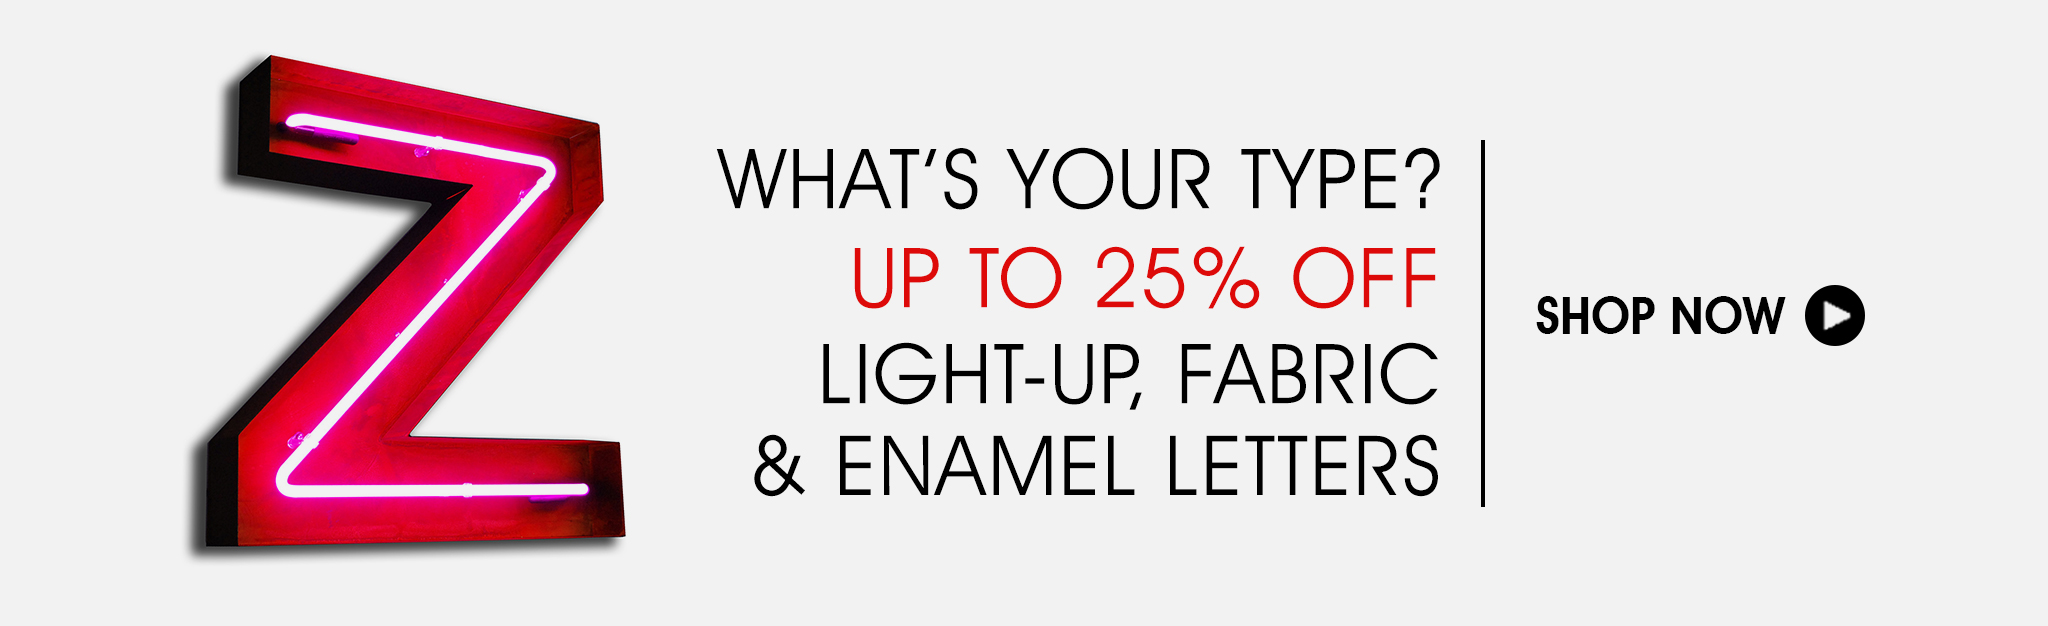 Up To 25% Off Light-Up, Fabric & Enamel Letters